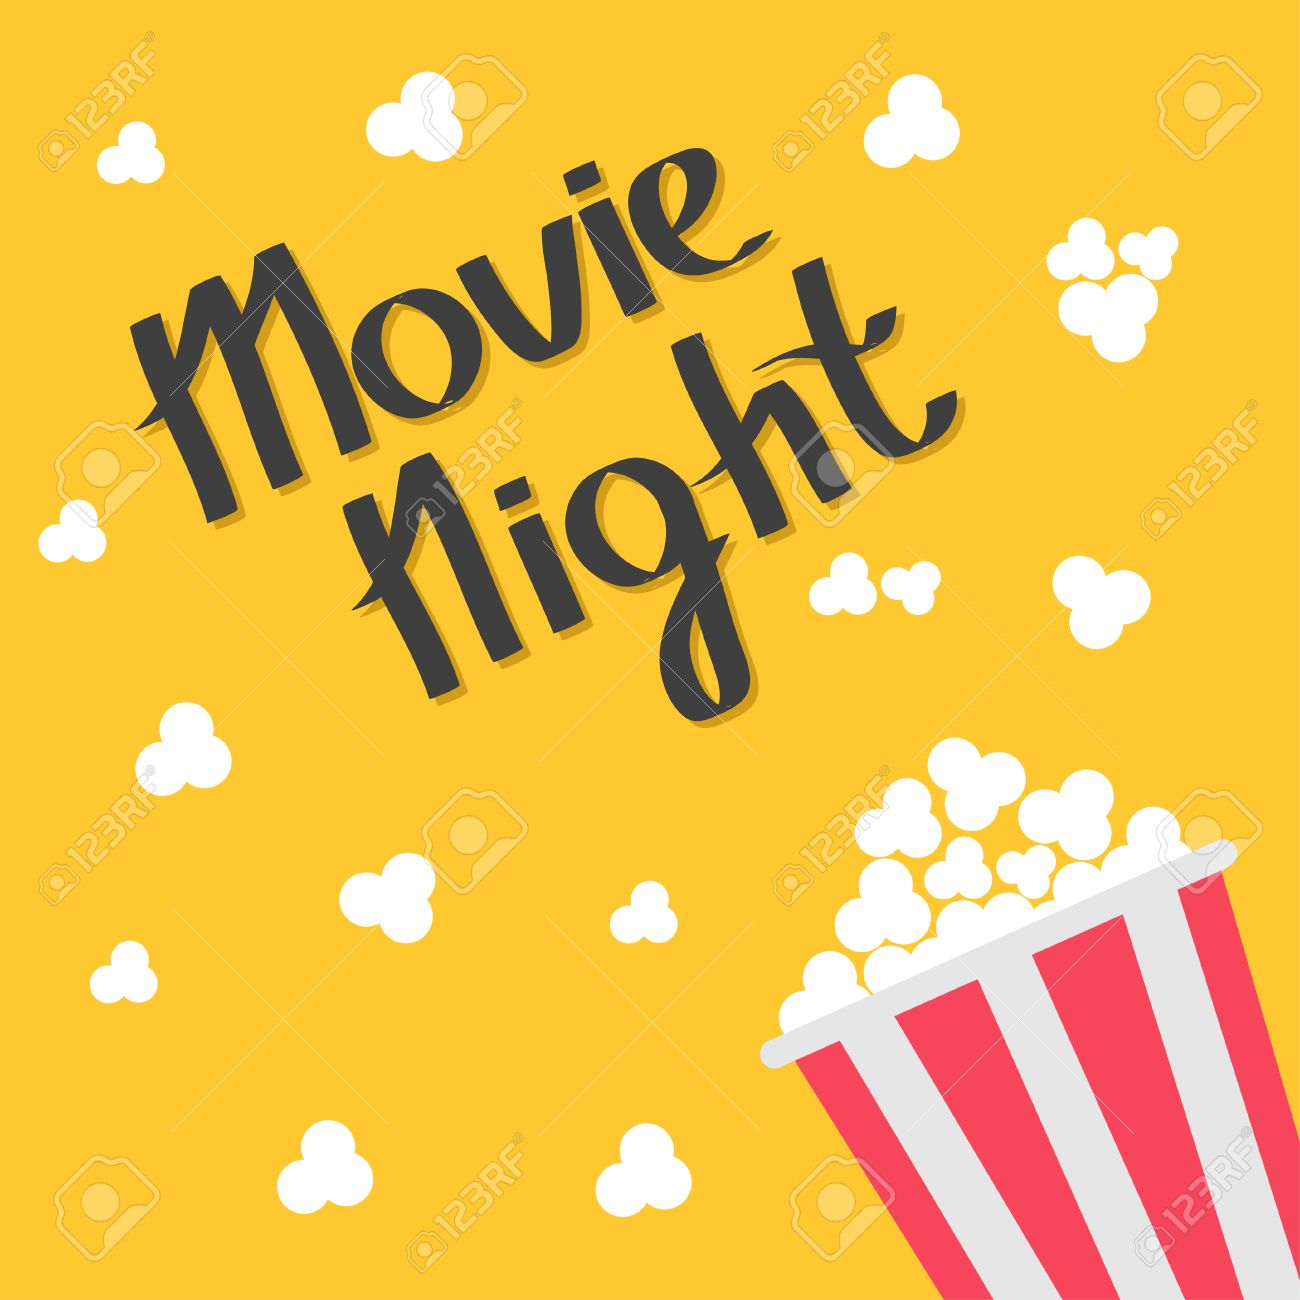 Popcorn bag. Cinema icon in flat design style. Right side. Movie night text. Lettering. Vector illustration - 53510771